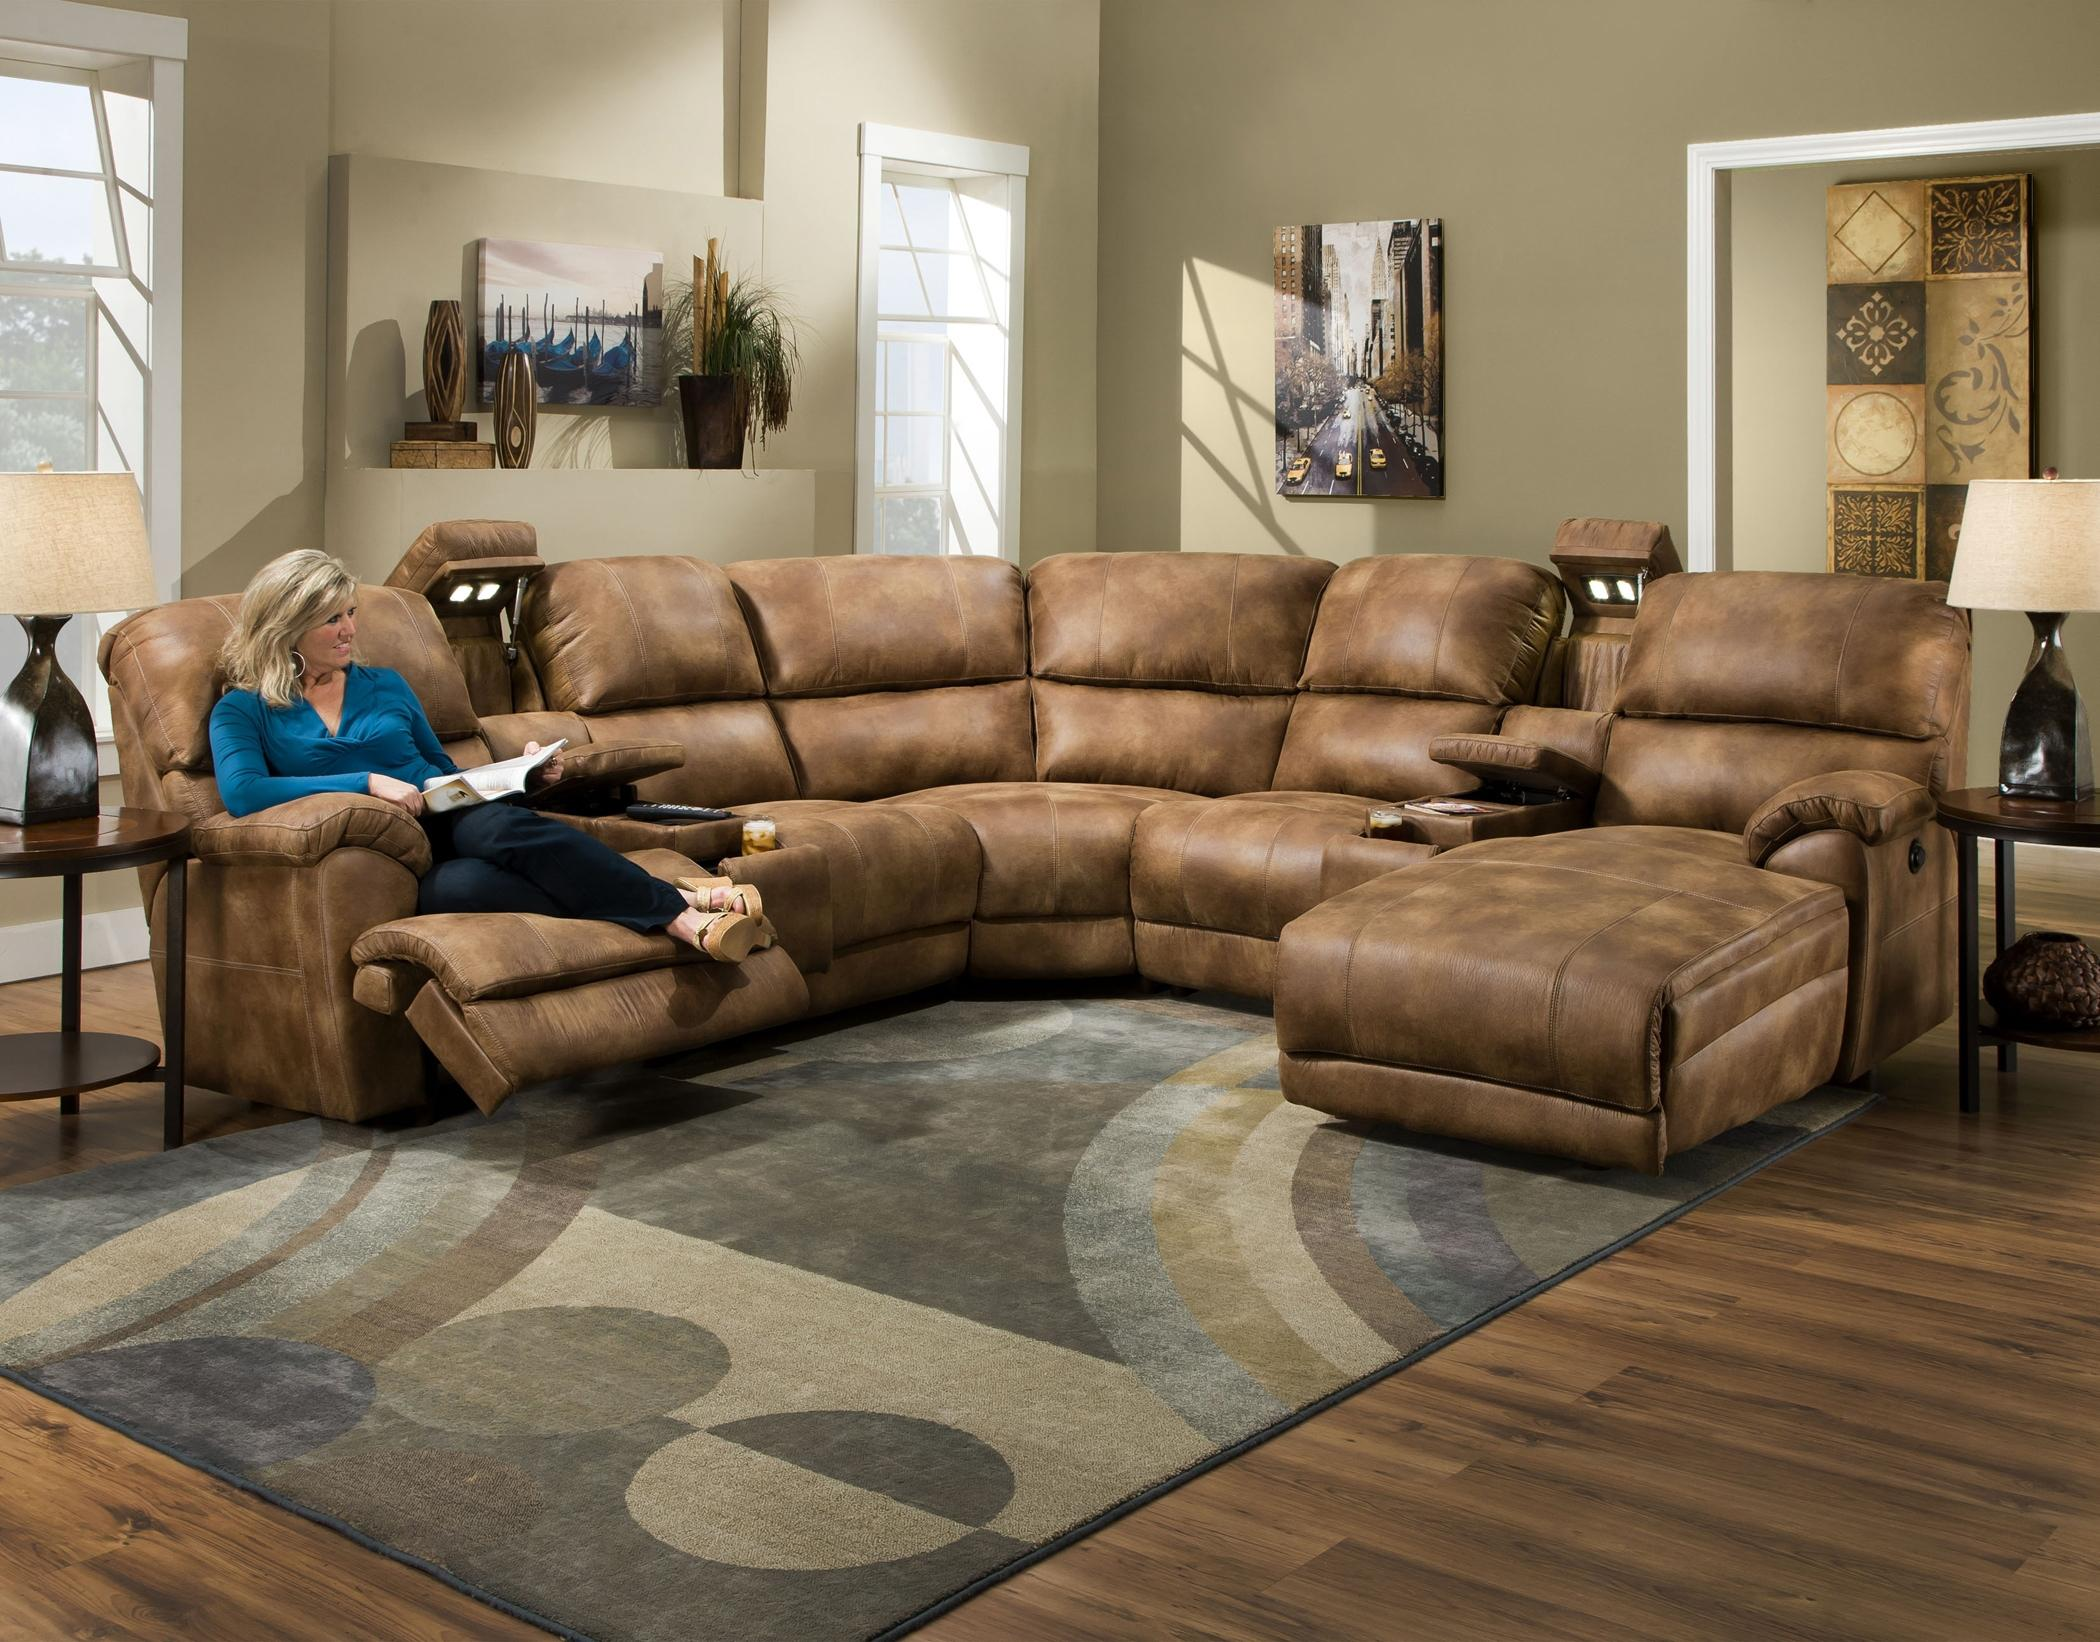 572 reclining sectional sofa with chaise by franklin handmade bed uk